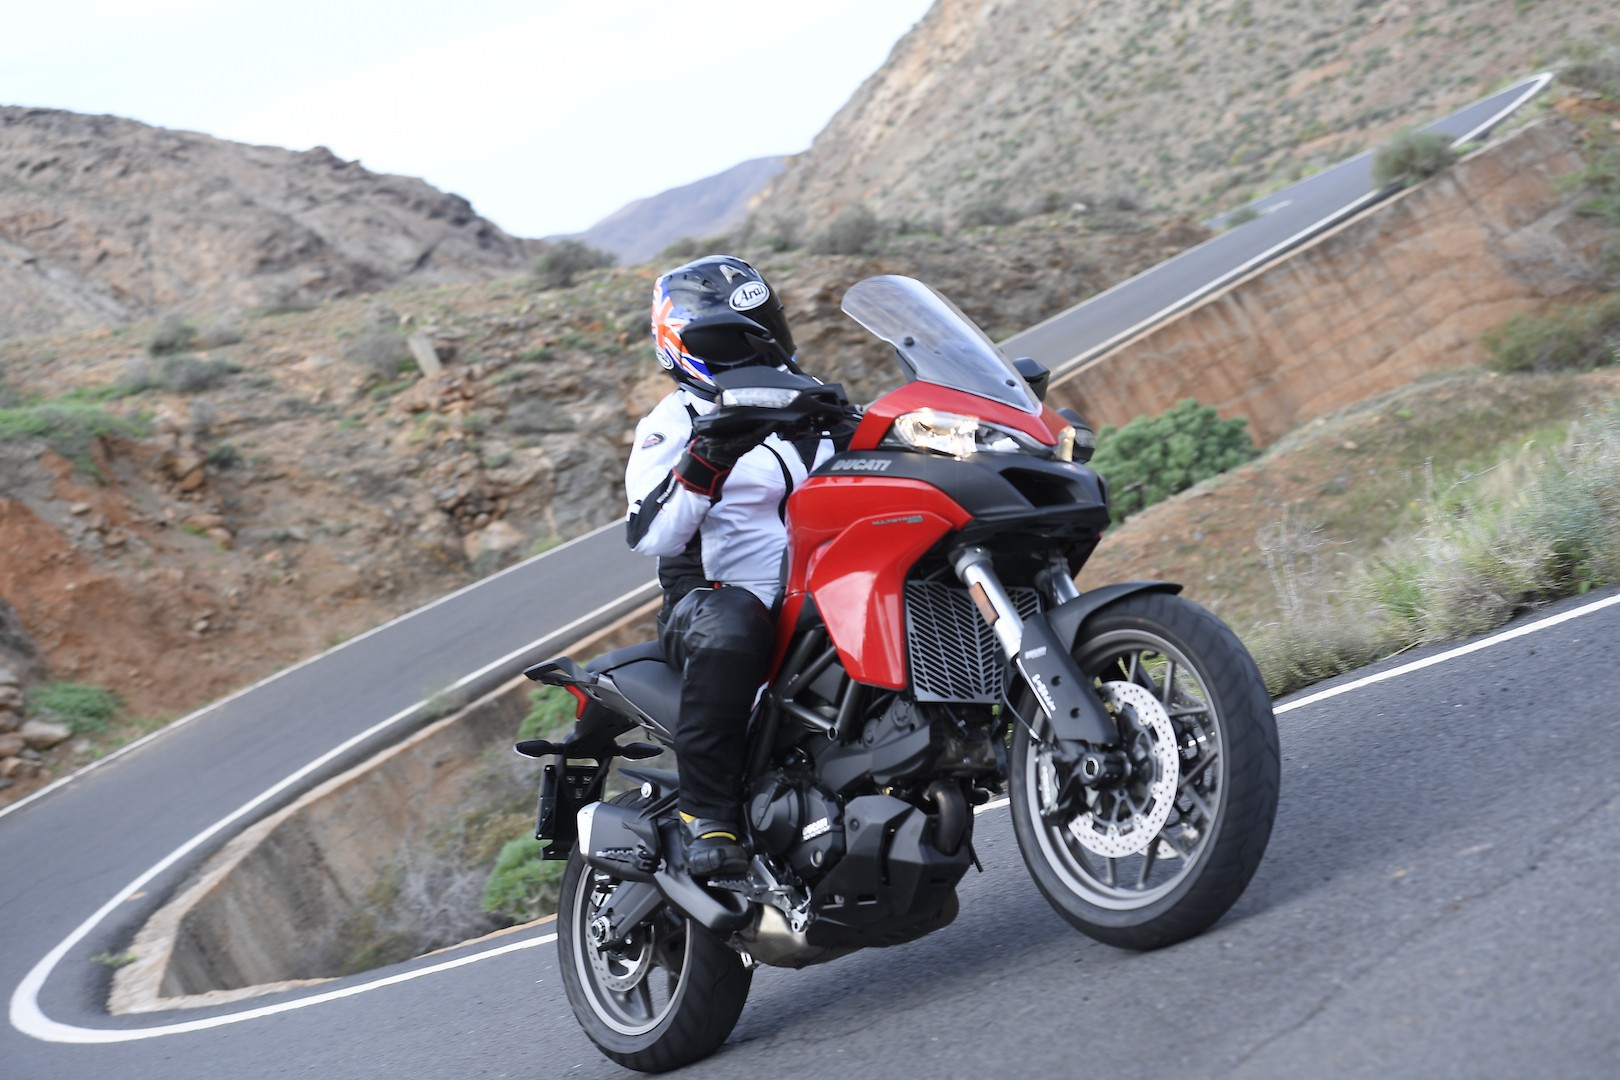 Ducati Multistrada 950 Launch Test: Worth Waiting For? 1